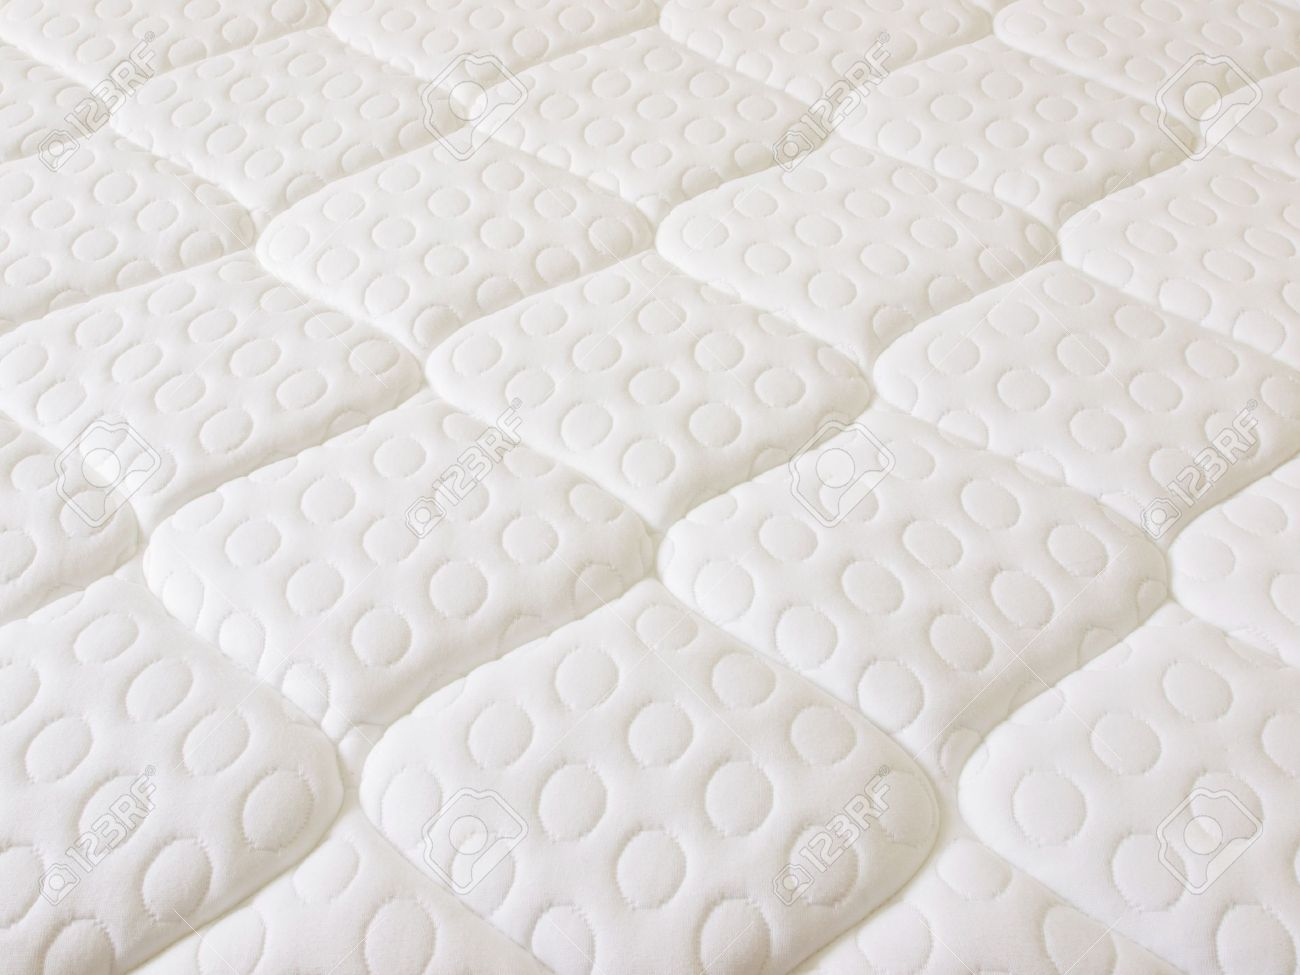 Where Can I Buy Englander 10741 2-Inch Latex Mattress Toppers, Twin X-Long, Cream